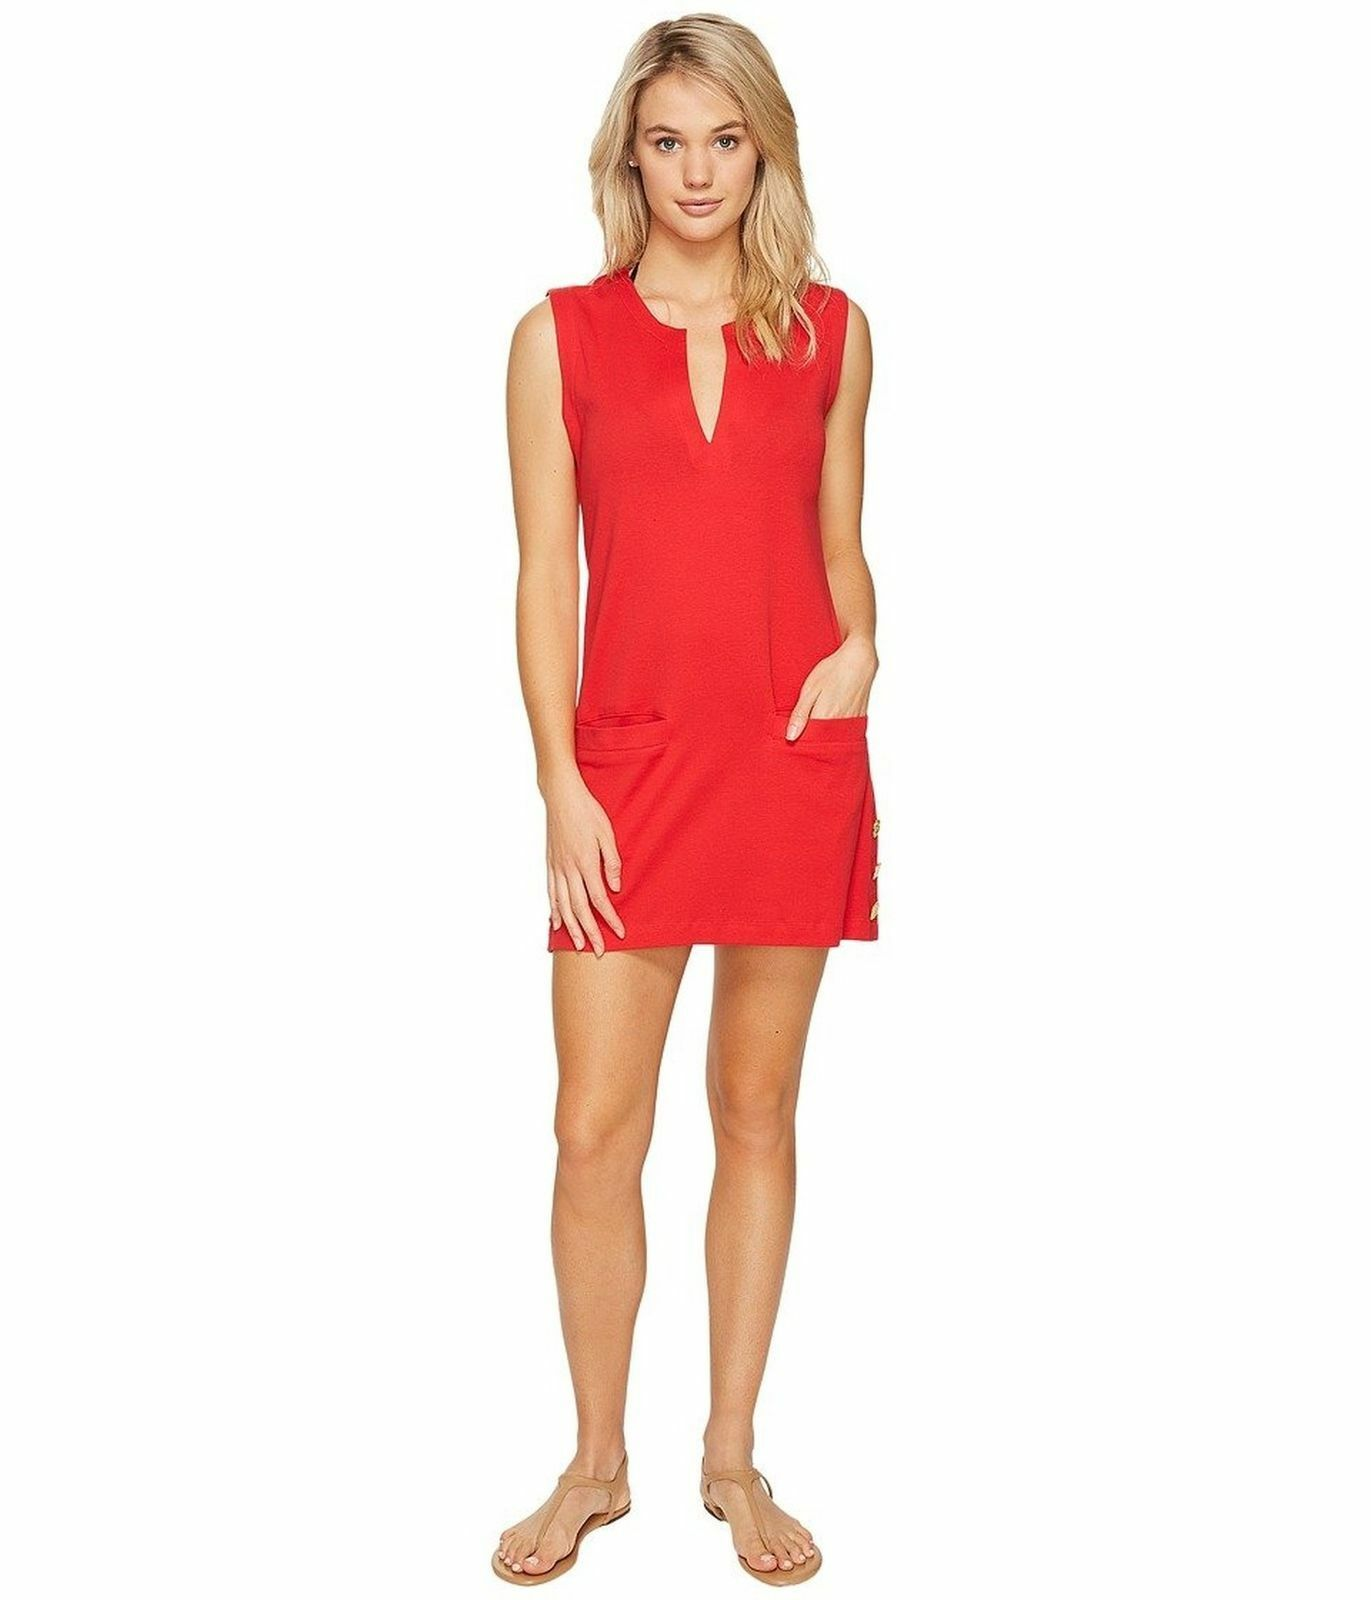 LAUREN Ralph Lauren Women's Button Tunic Cover-Up Red orange Swimsuit Top Medium